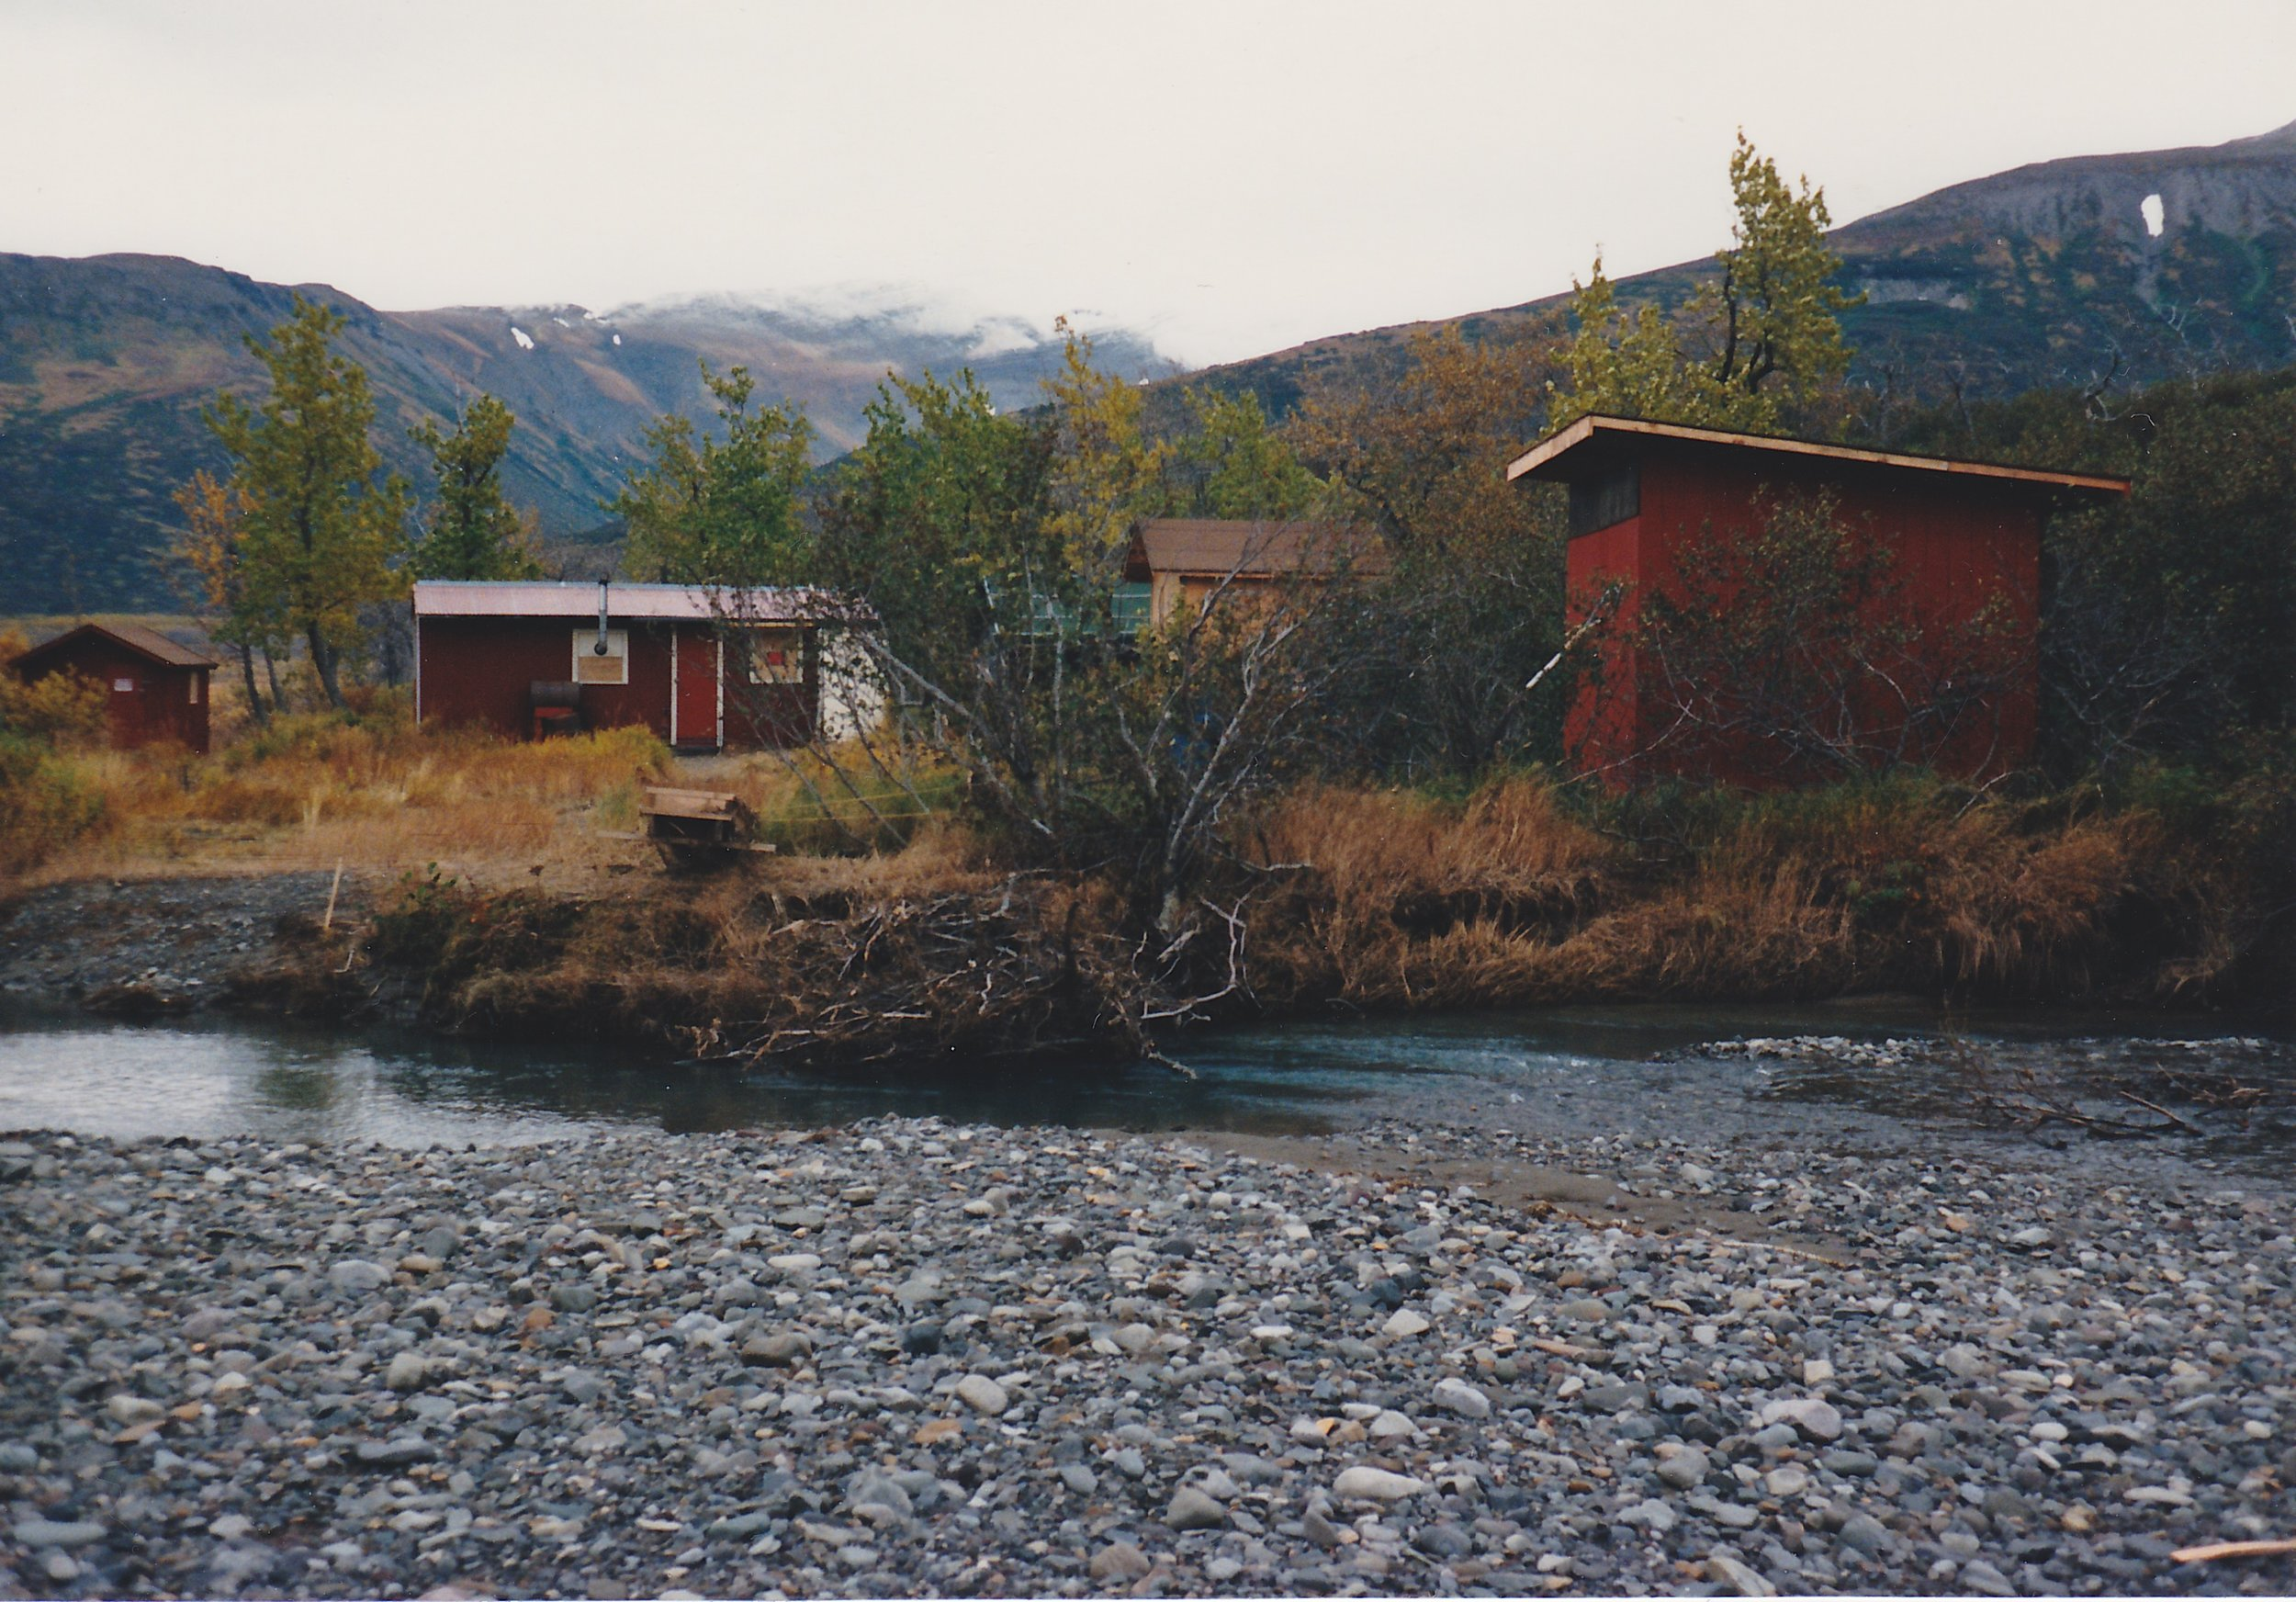 The Dog Salmon River camp in the summer of 1989.  This photo shows the small channel between the cabin and the runway.